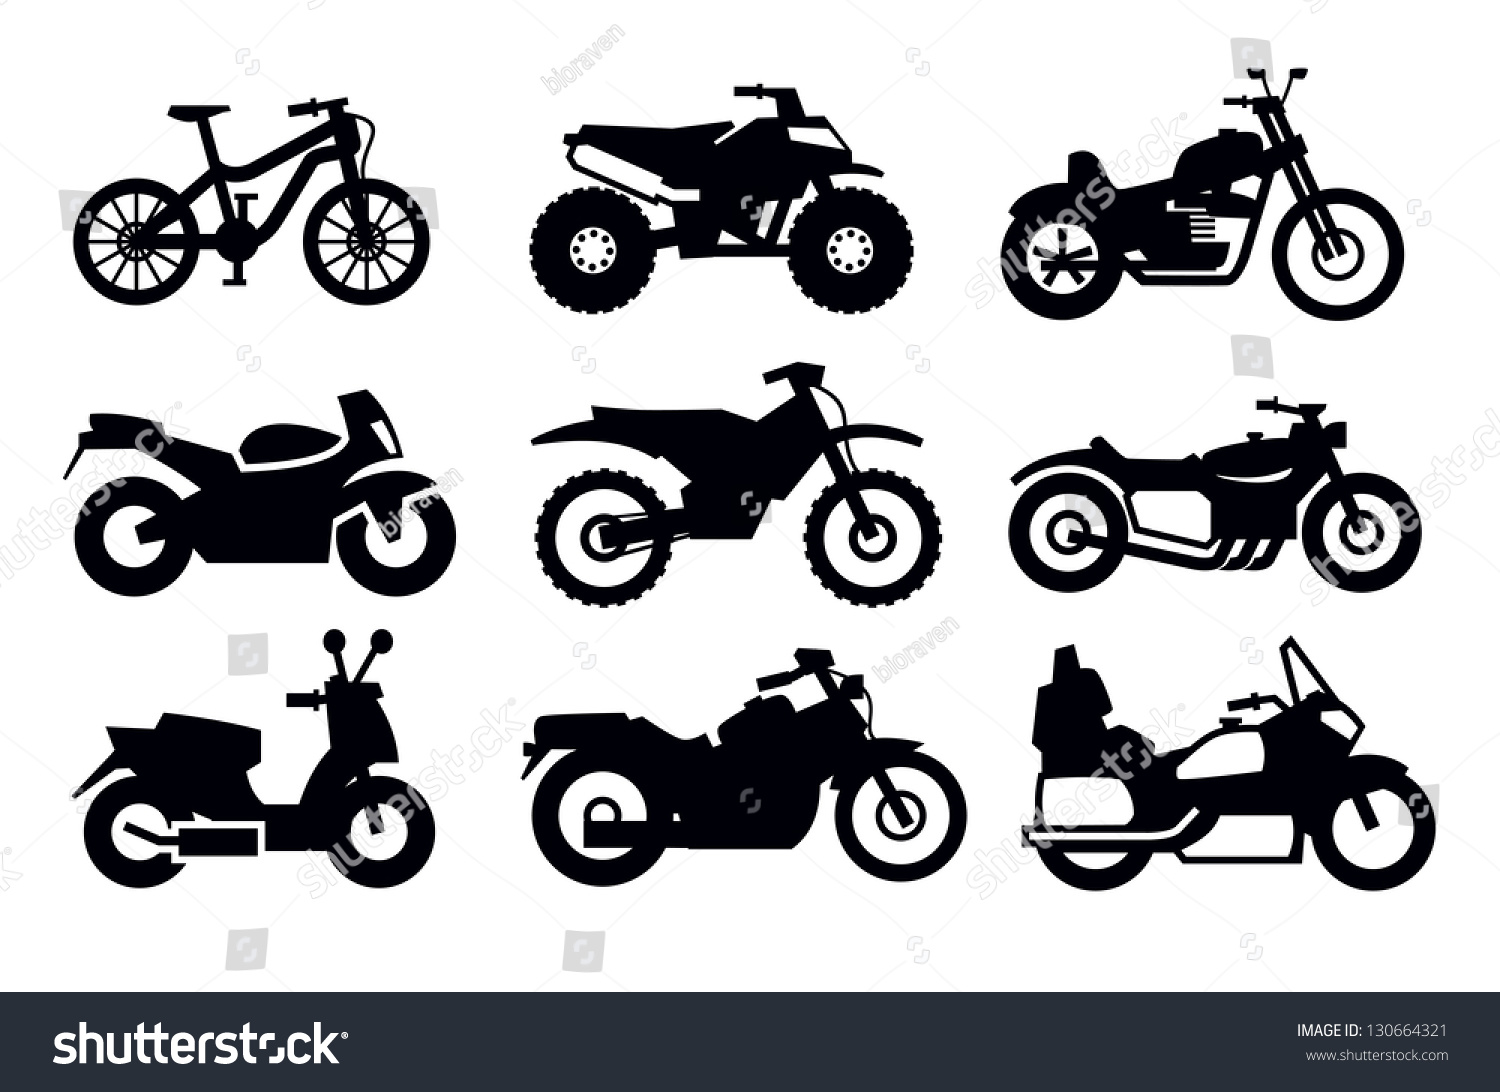 vector free download motorcycle - photo #14